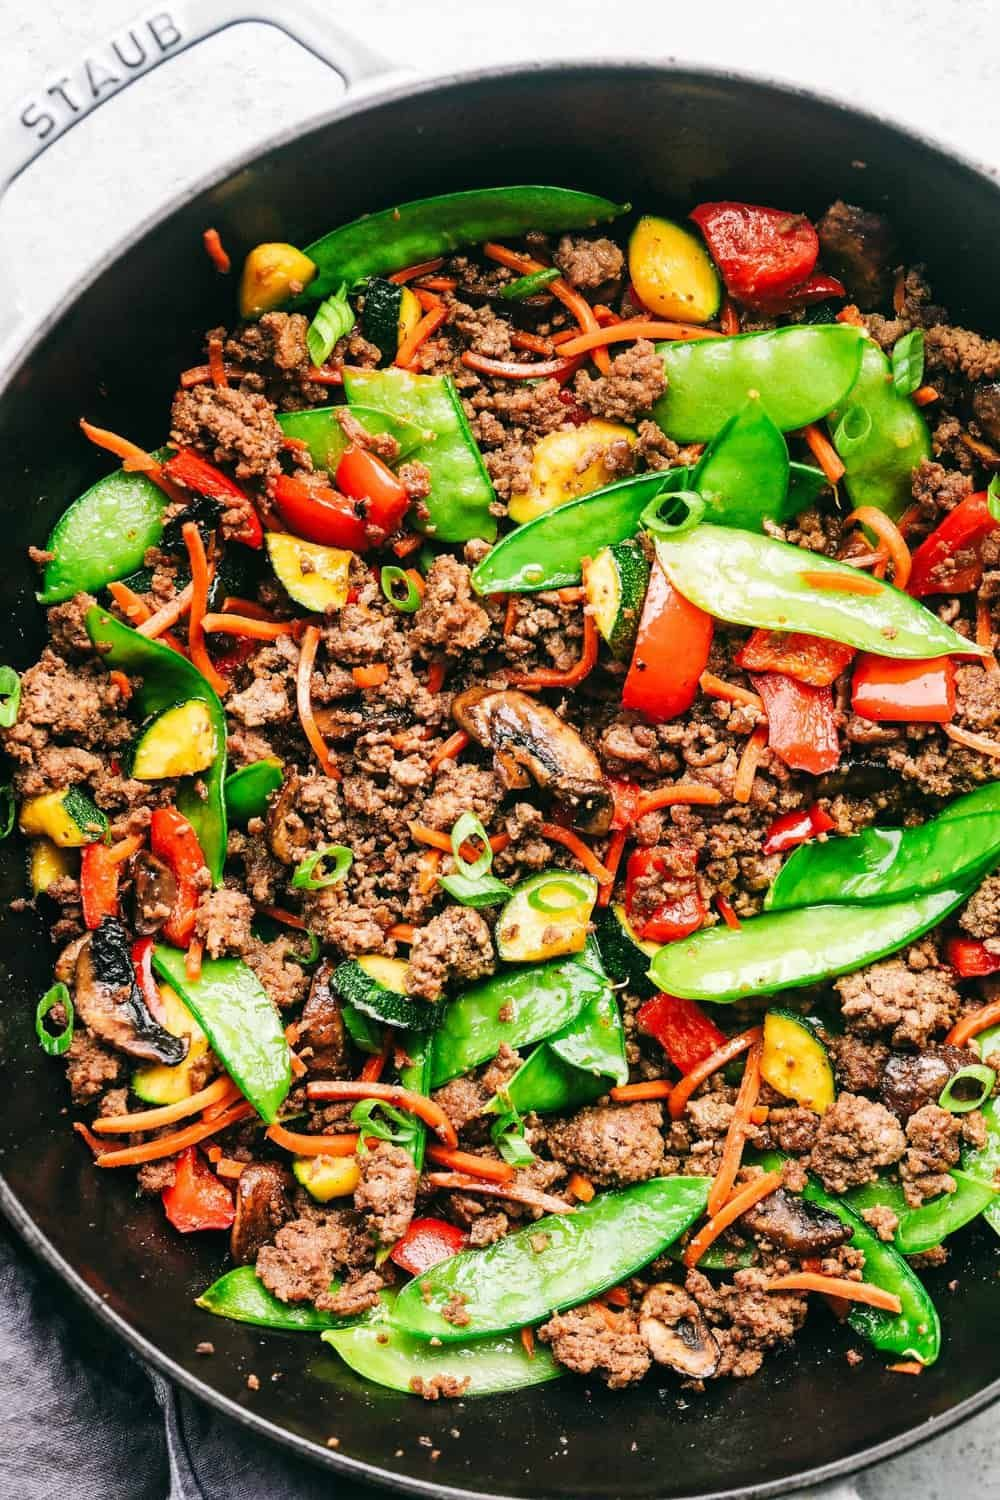 Korean Ground Beef Stir Fry The Recipe Critic Healthy Ground Beef Beef Recipes Ground Beef Stir Fry